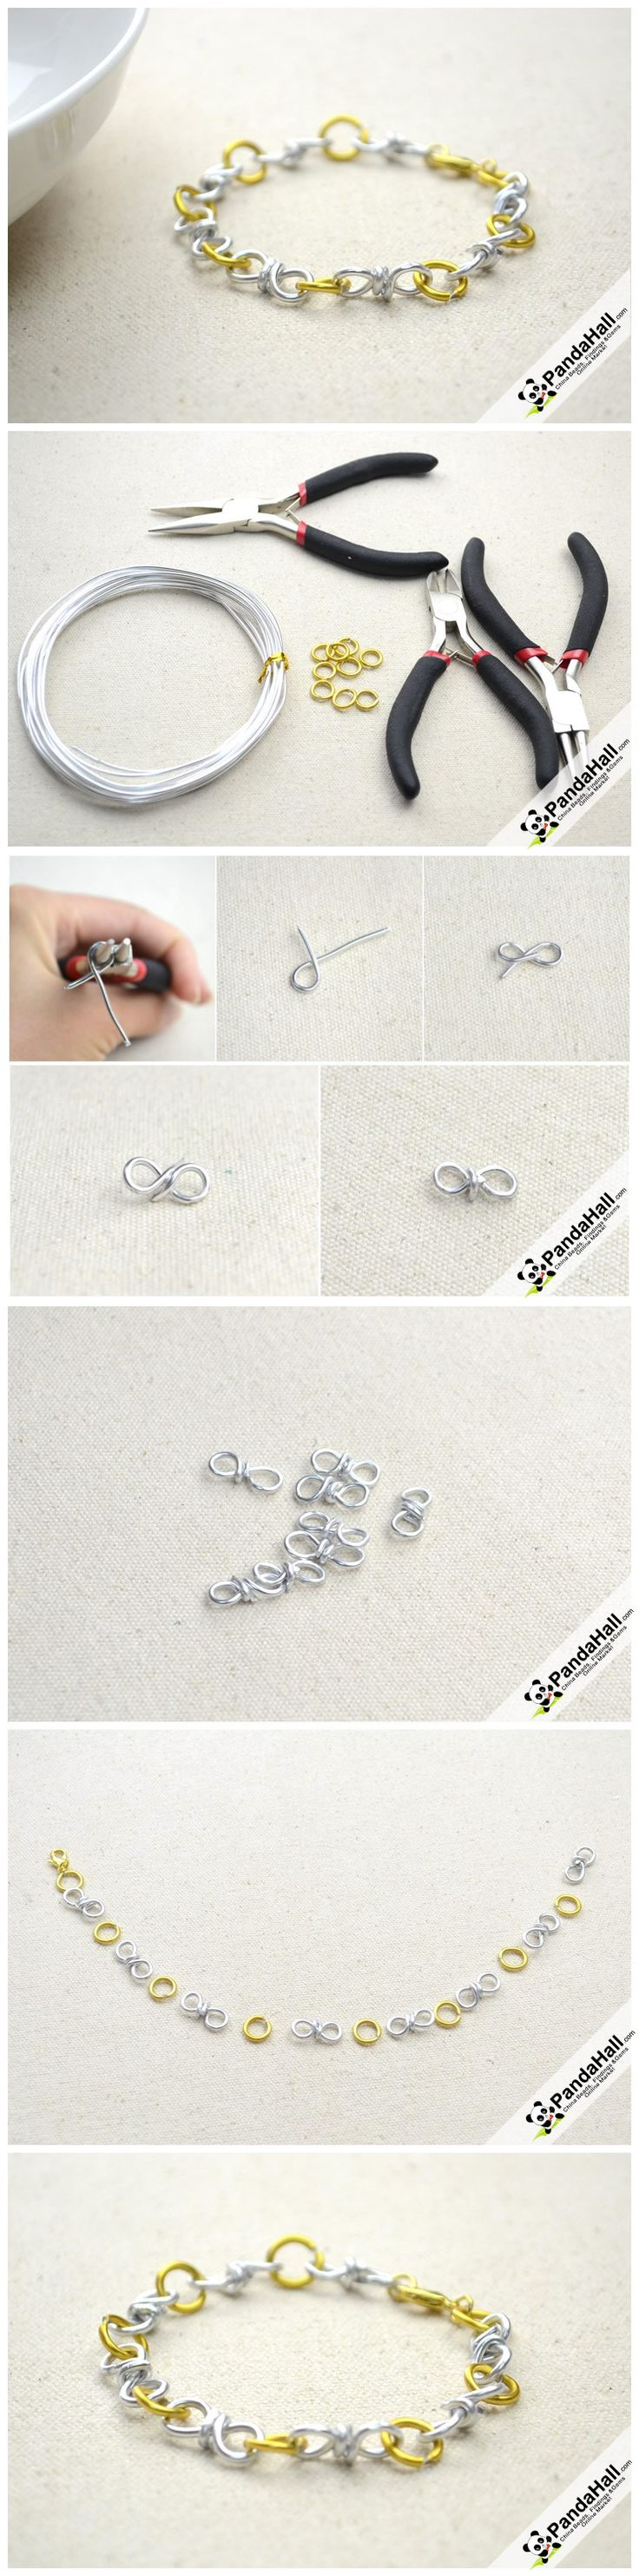 Cool Bracelet Making idea-how to make Stunning Wire Bracelet from pandahall.com